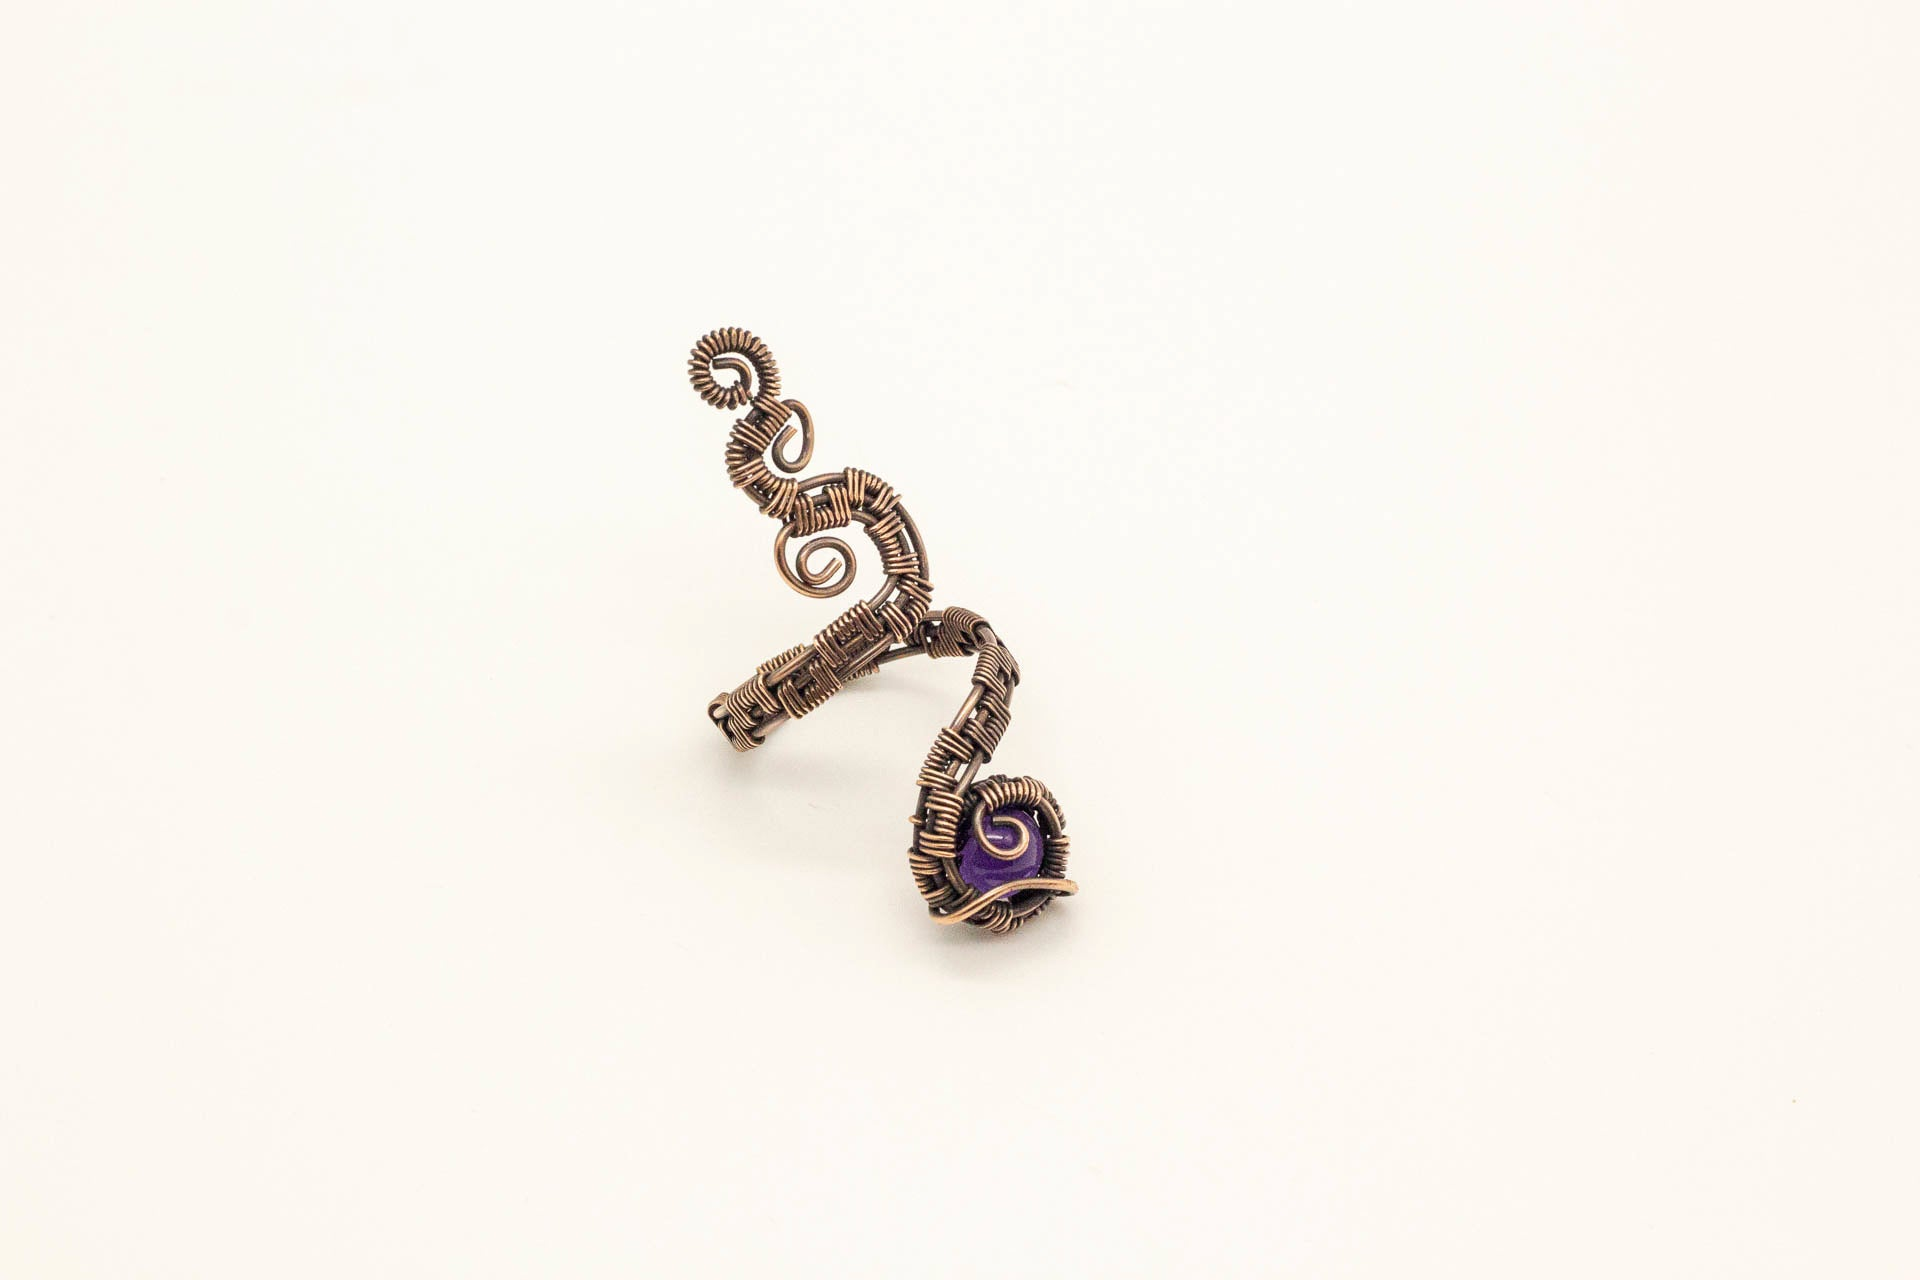 purple-fused-glass-copper-adjustable-ring-nymph-in-the-woods-jewelry